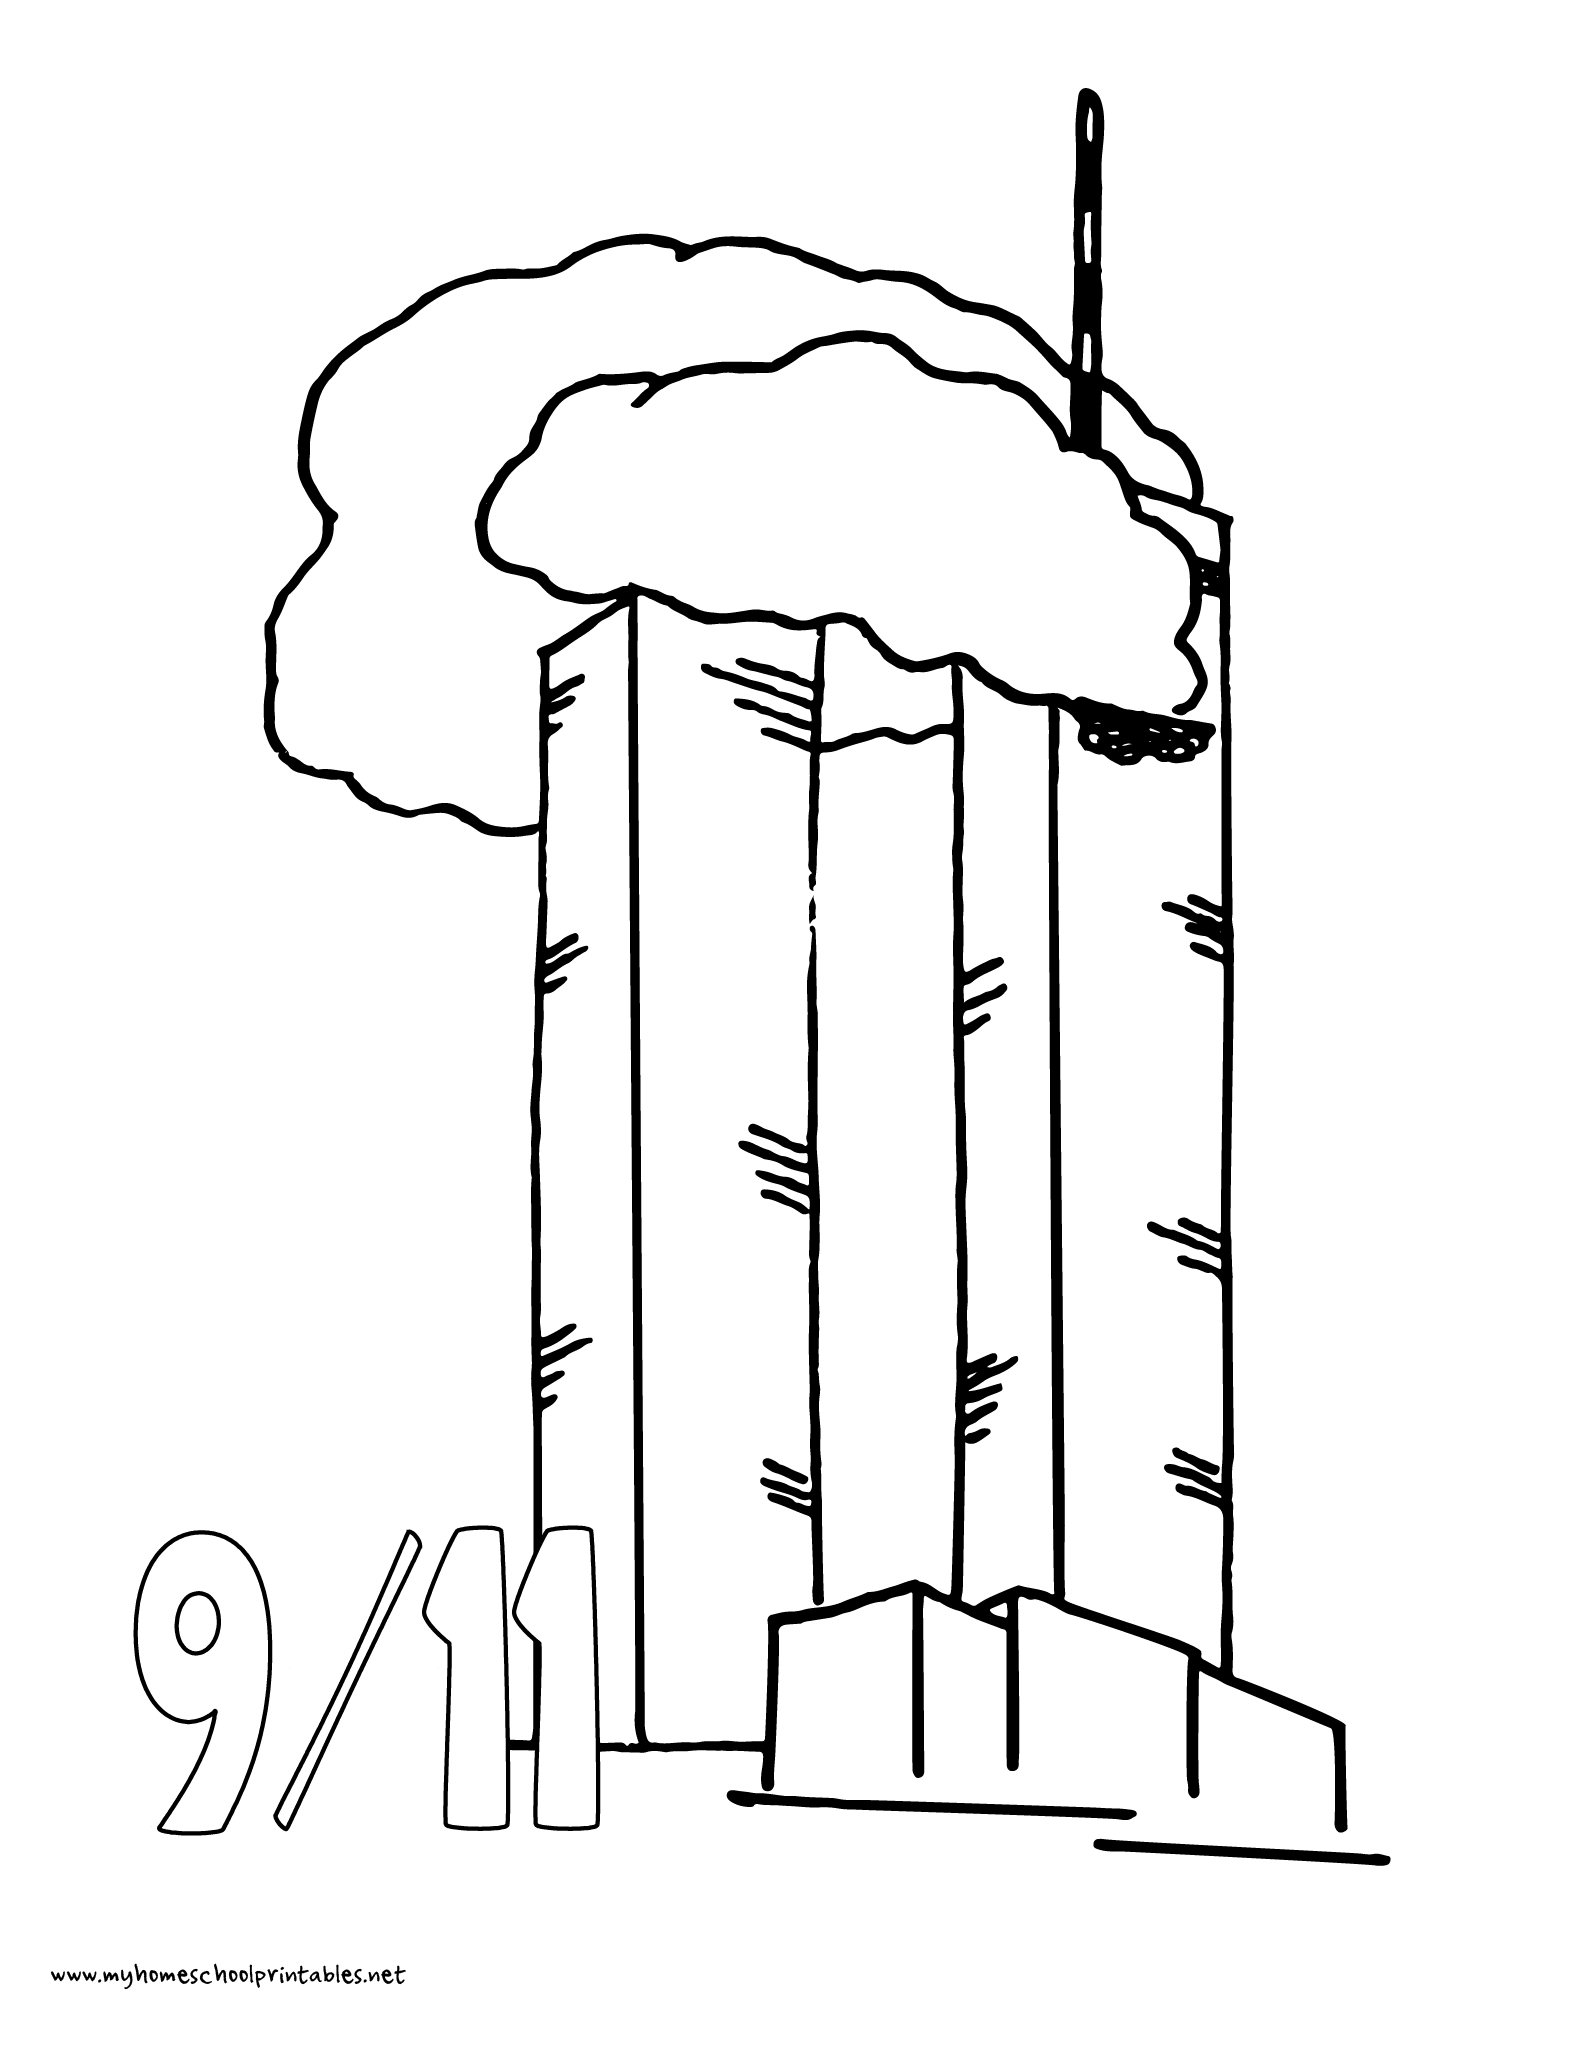 World History Coloring Pages Printables 9 11 World Trade Center Terrorist Attack